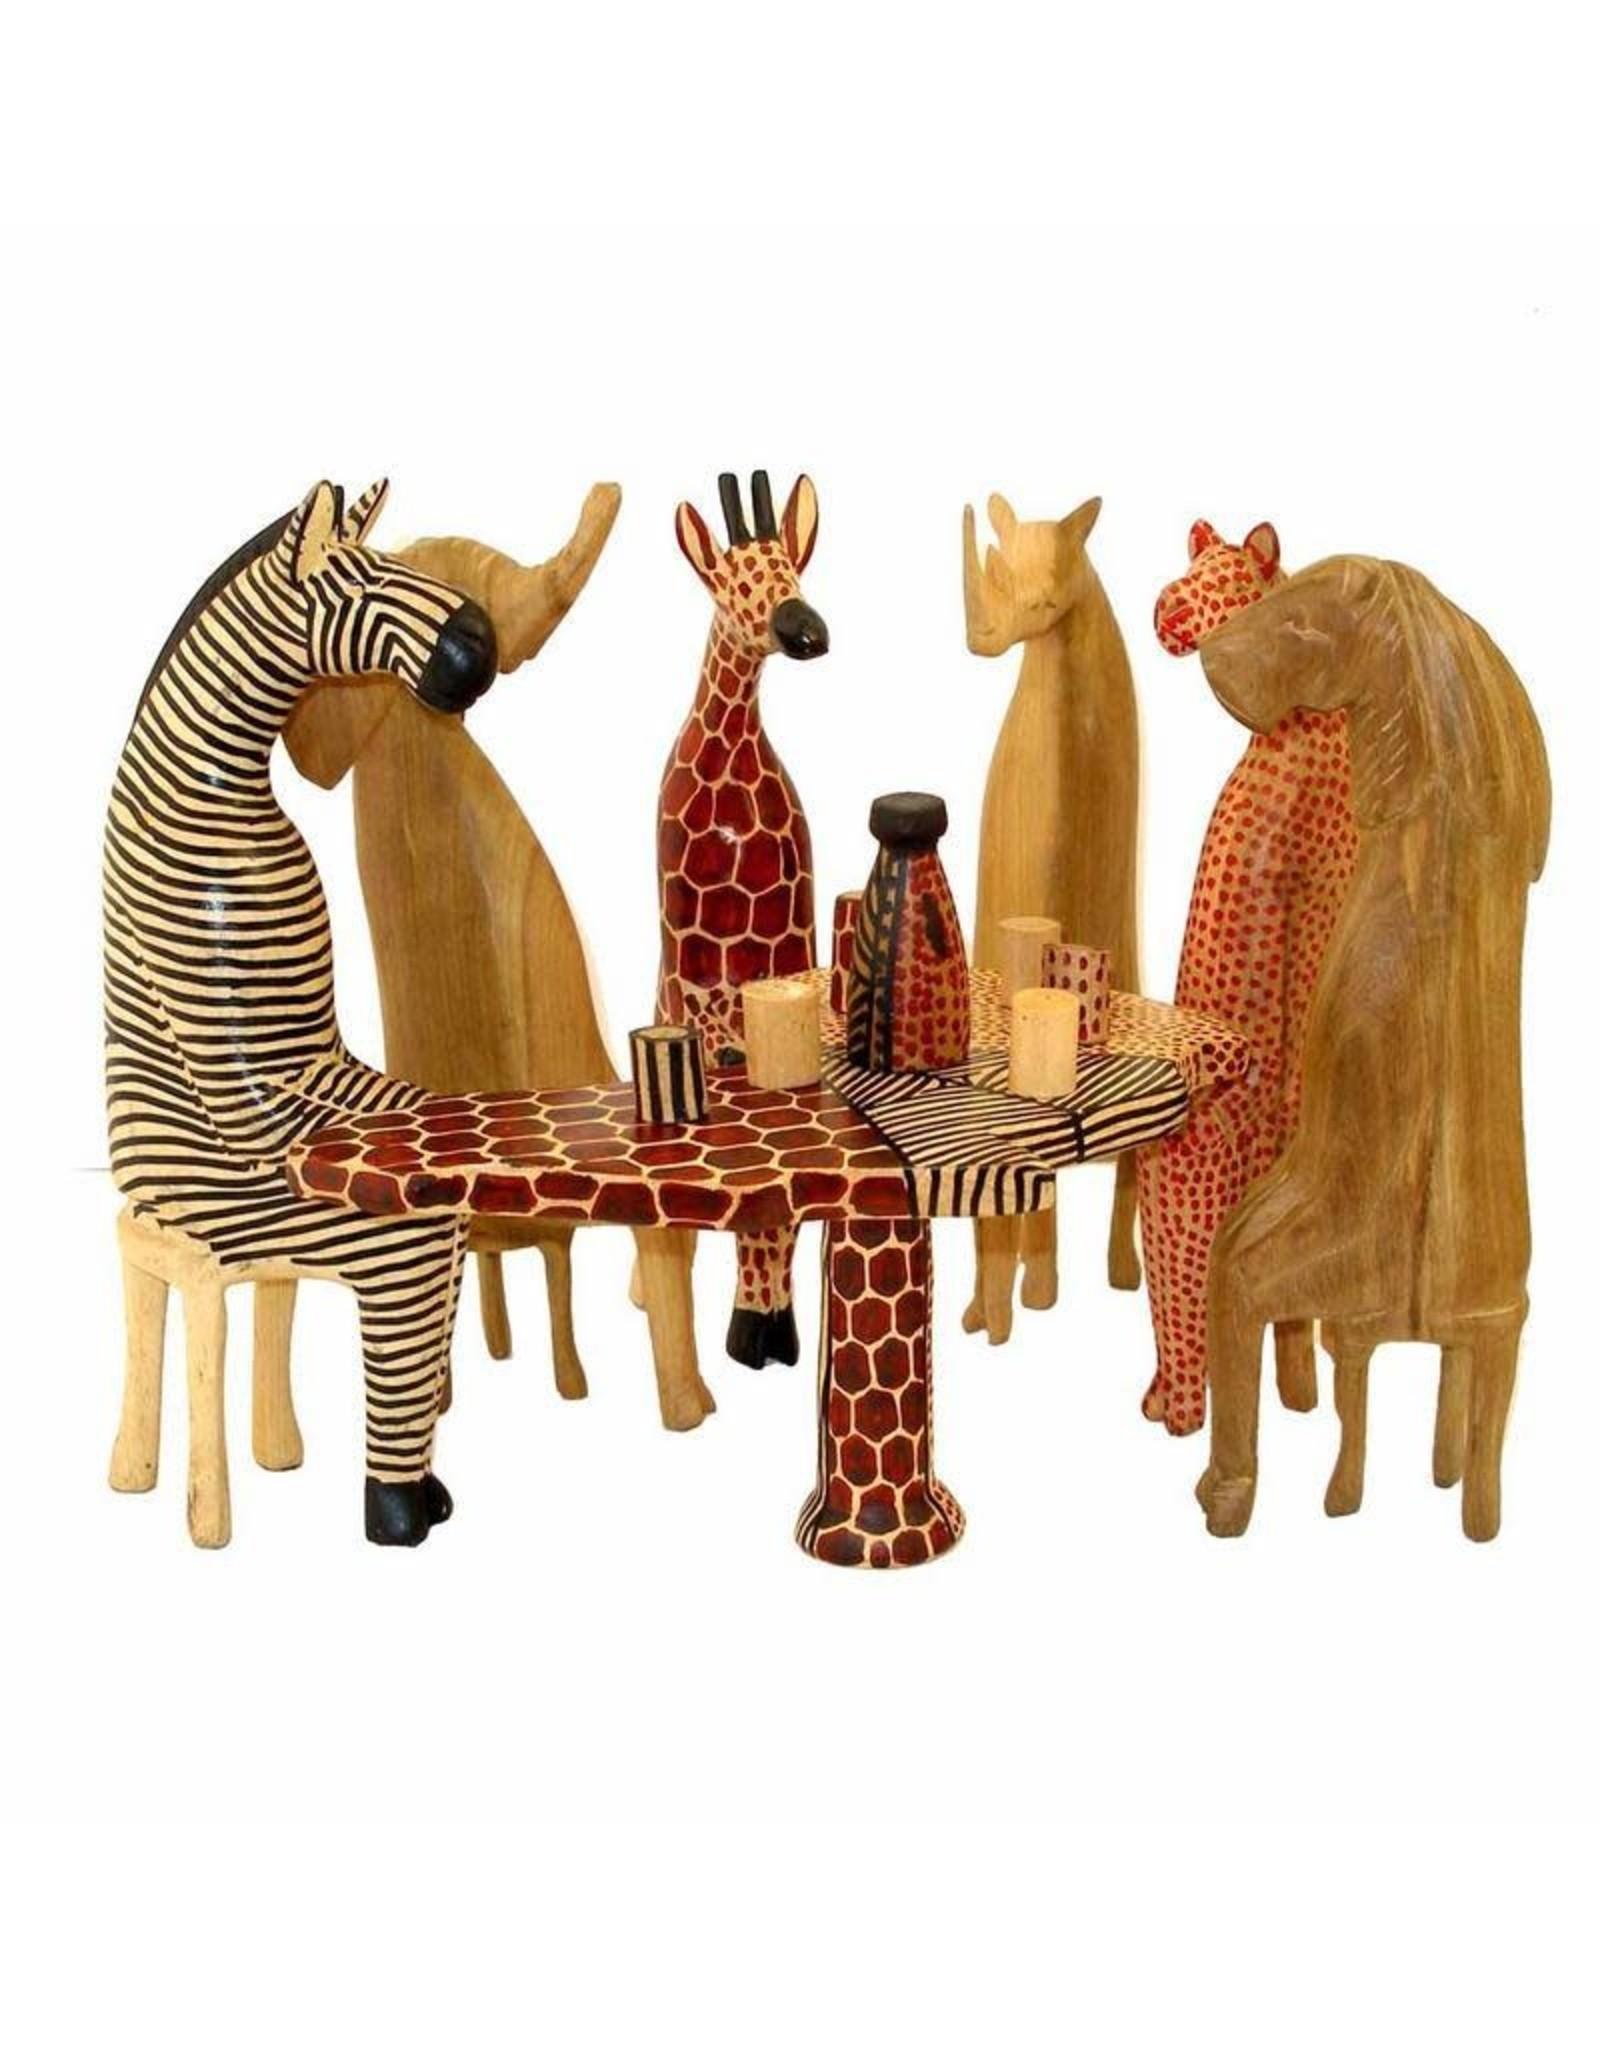 Party Animals Wood Carvings